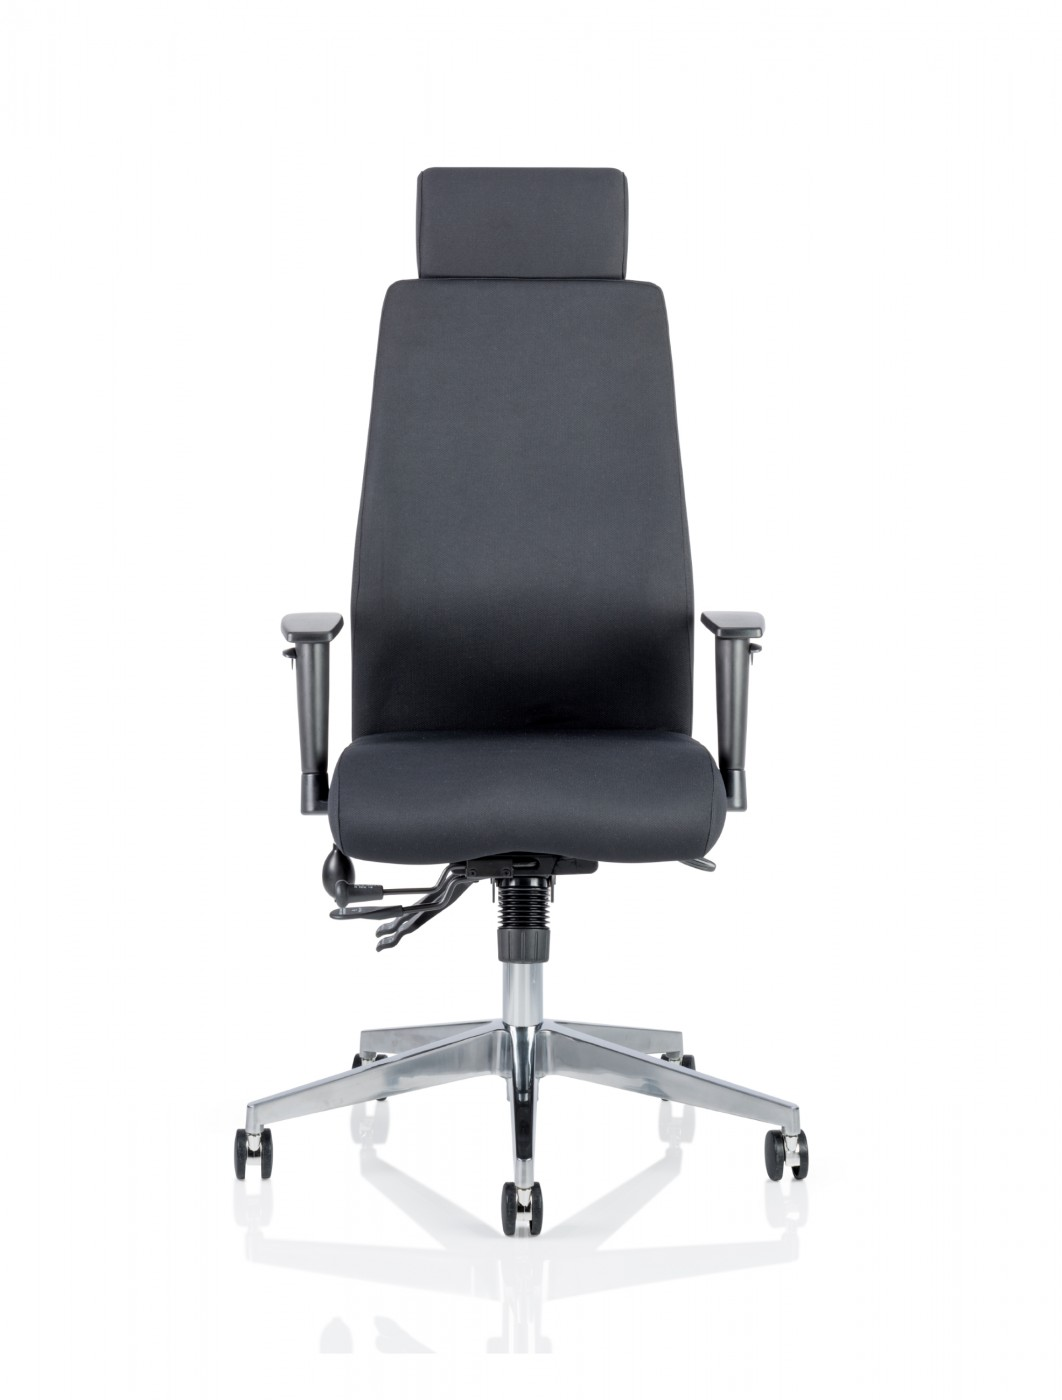 office chair with headrest ivonyx01 ivonyx02 121 office furniture